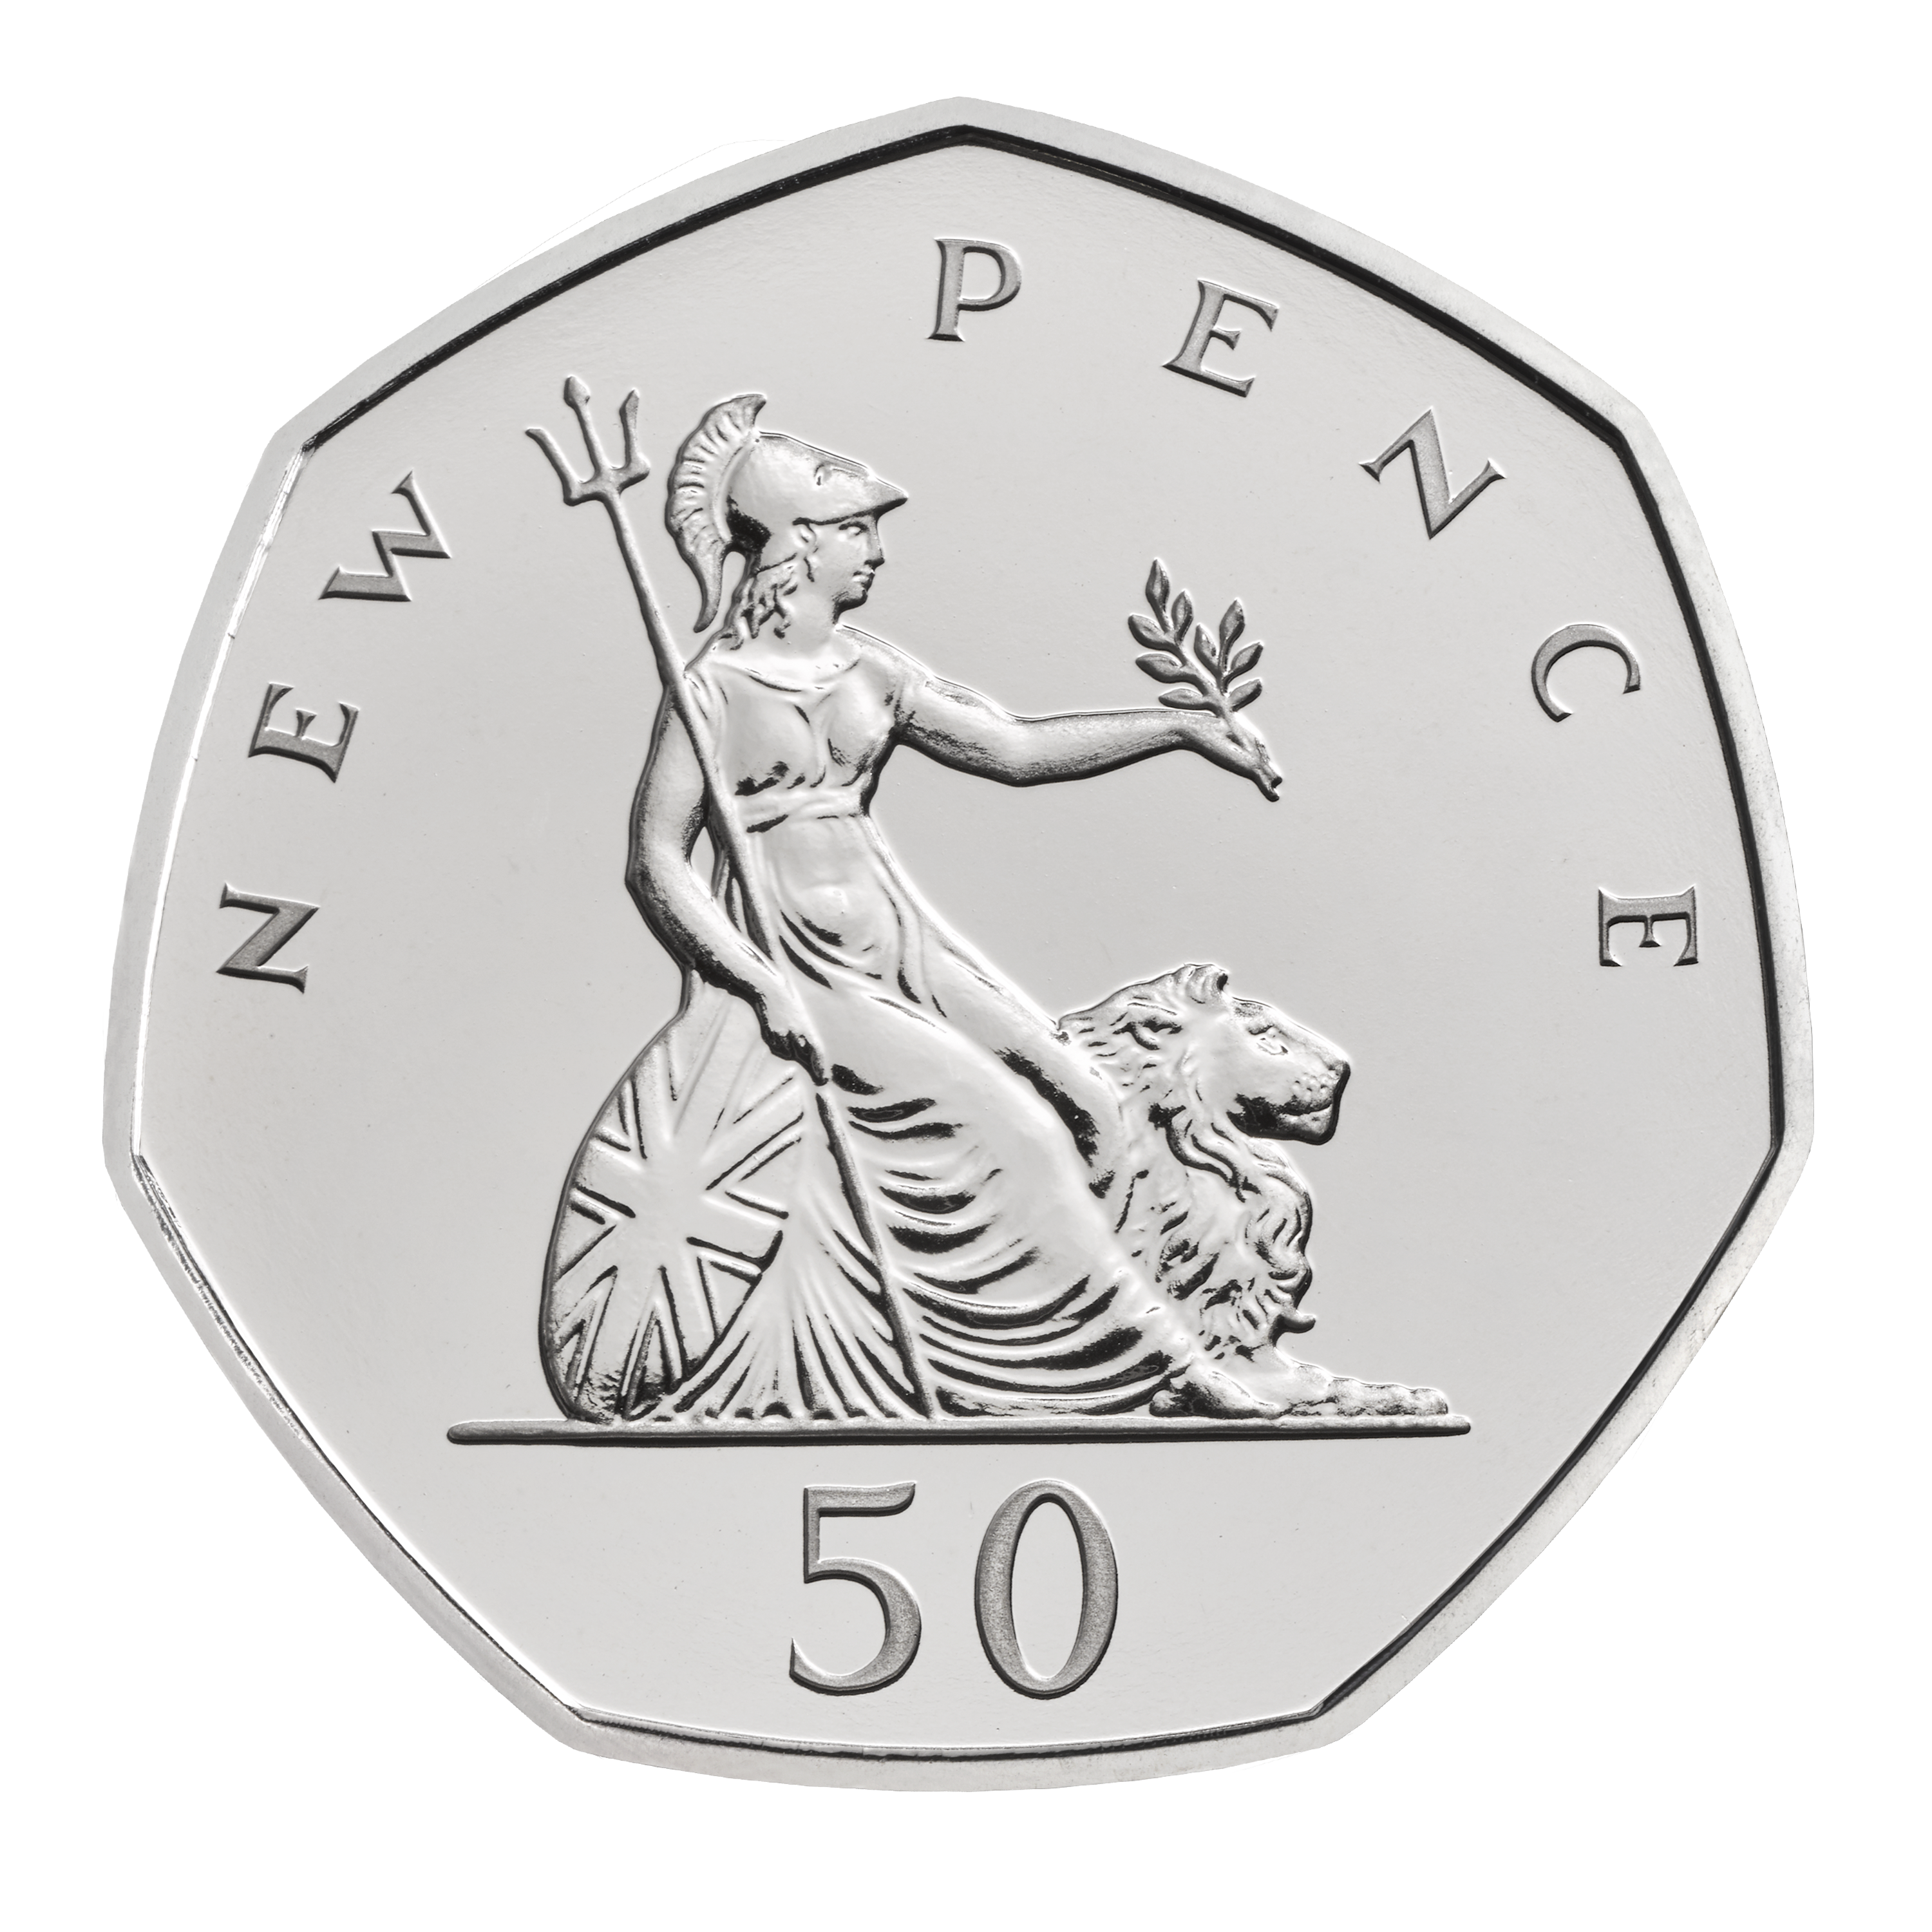 main image for Visit The Royal Mint Experience To Strike Your Own 2019 50p 'New Pence' Coin